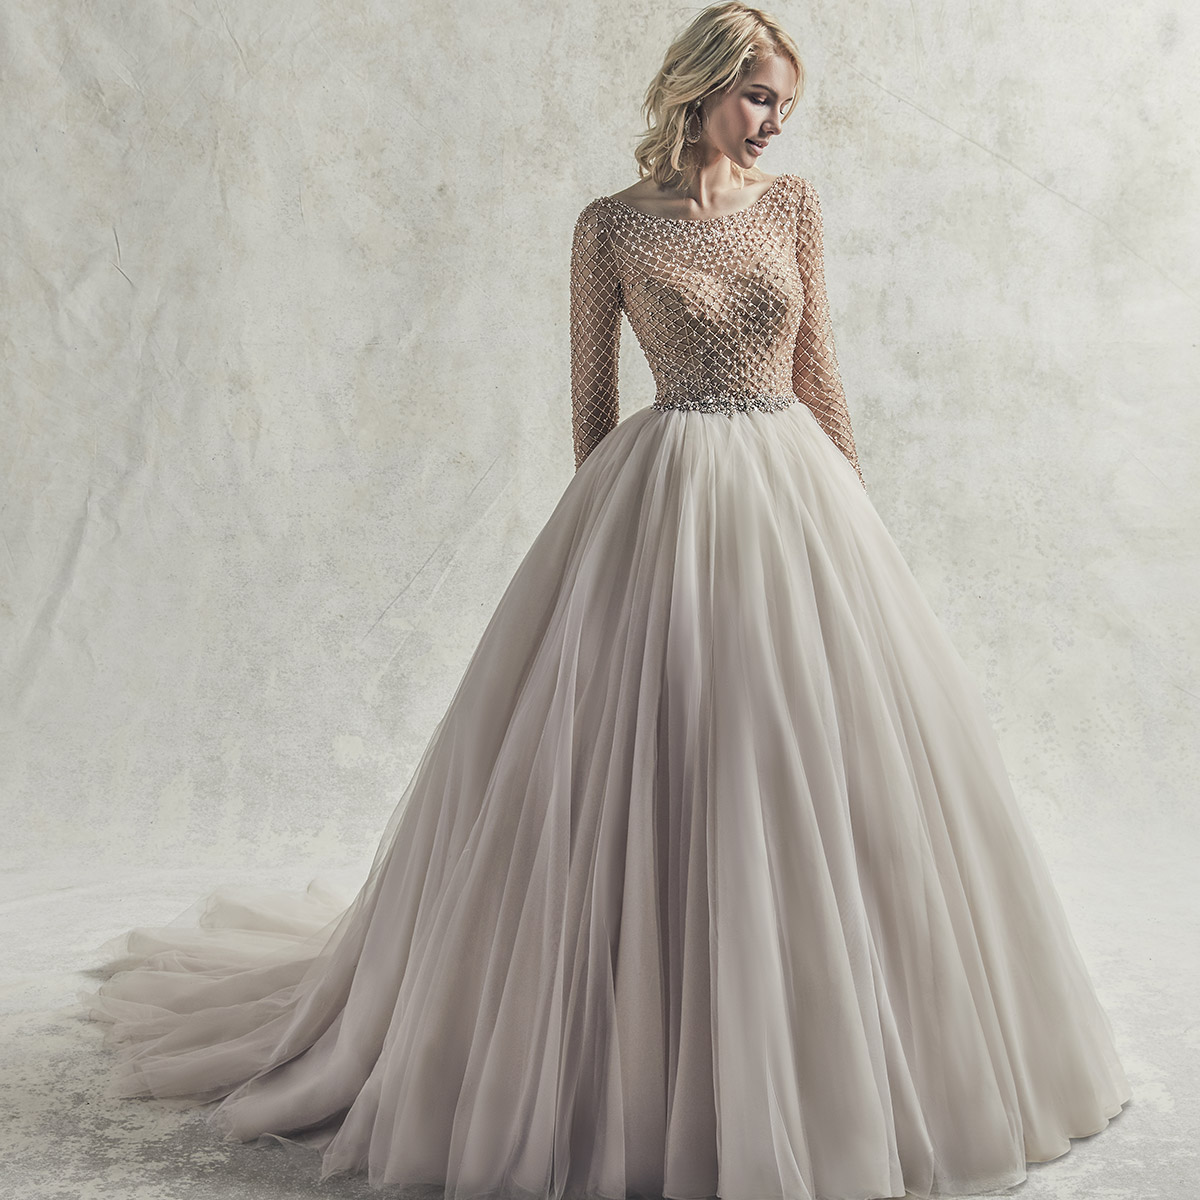 Wedding Dress Trends To Love In 2019: Silhouettes & Other